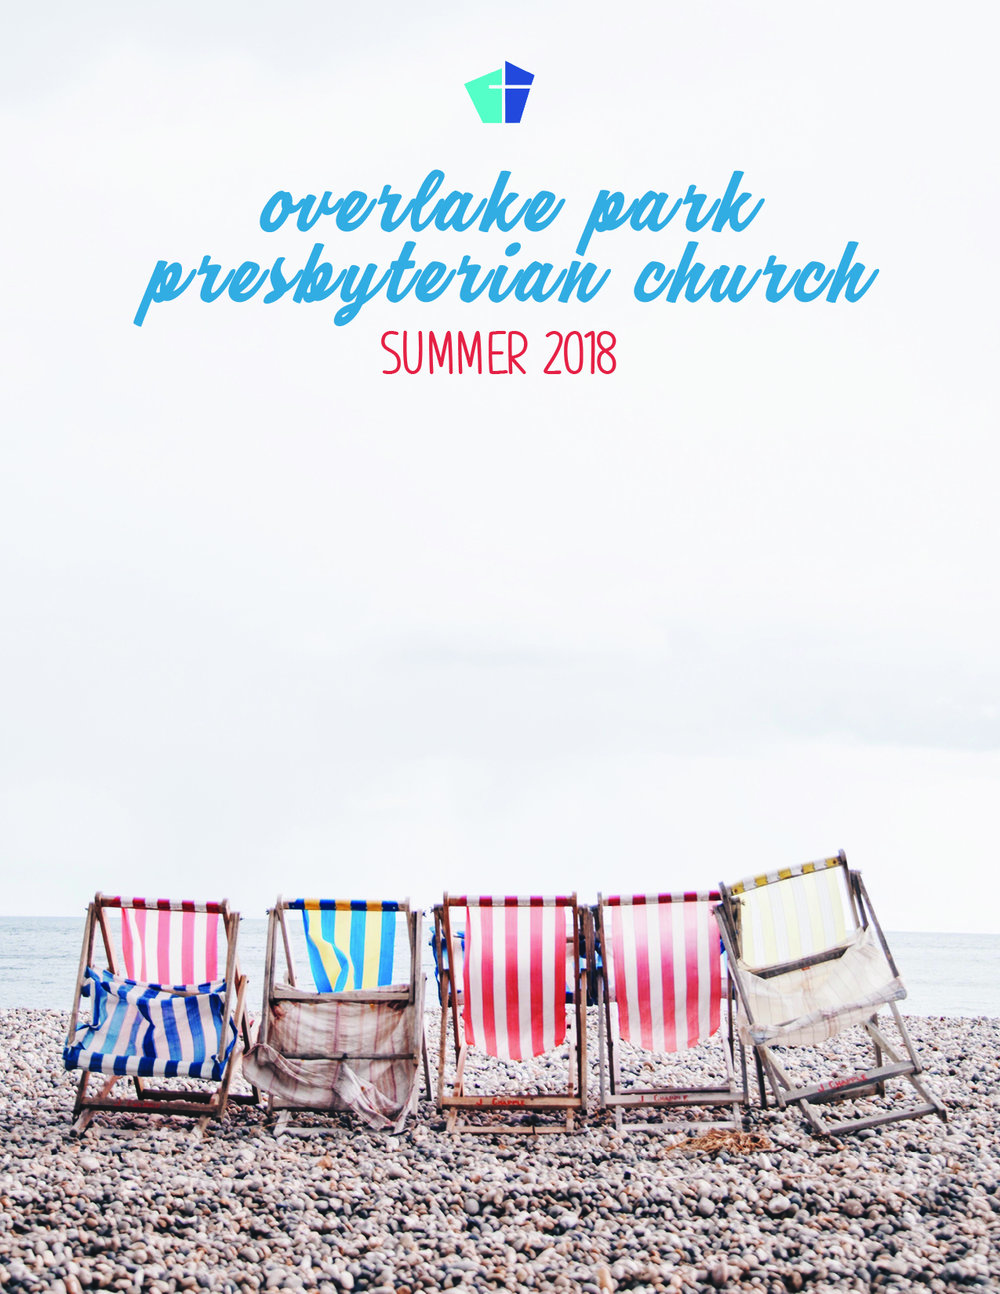 2018 Summer Newslette Cover.jpg